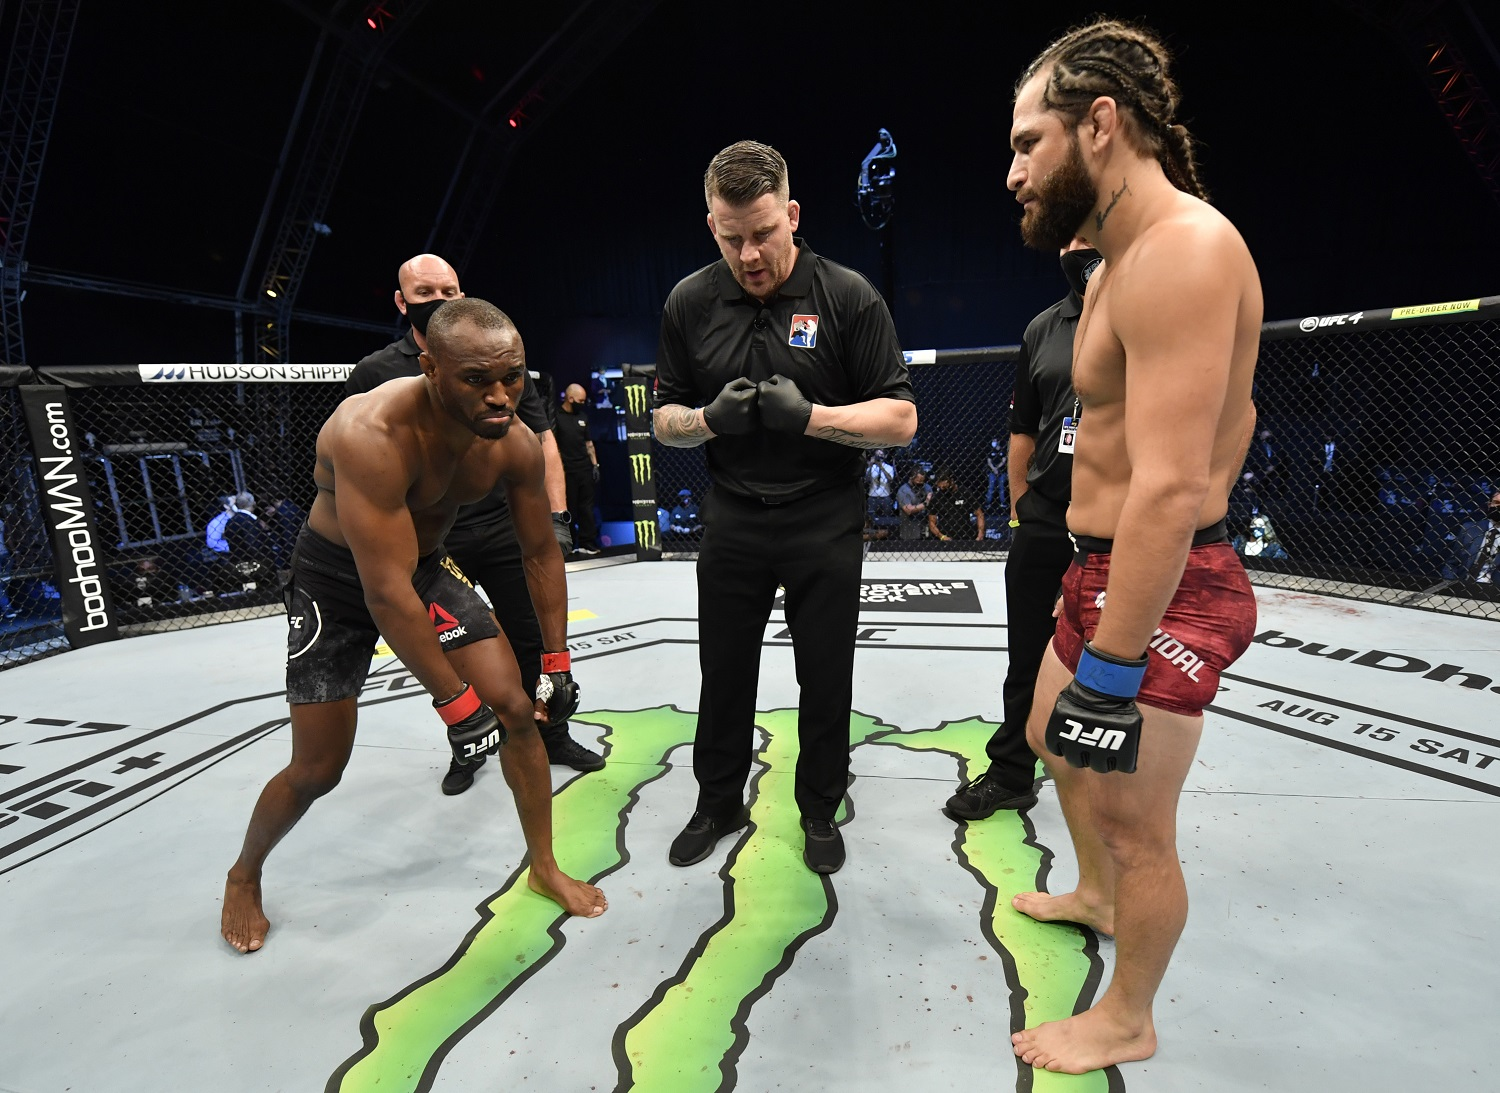 Kamaru Usman vs. Jorge Masvidal proved to be a popular UFC 251 fight despite Masvidal having to be brought in at the last minute. | Jeff Bottari/Zuffa LLC/Getty Images